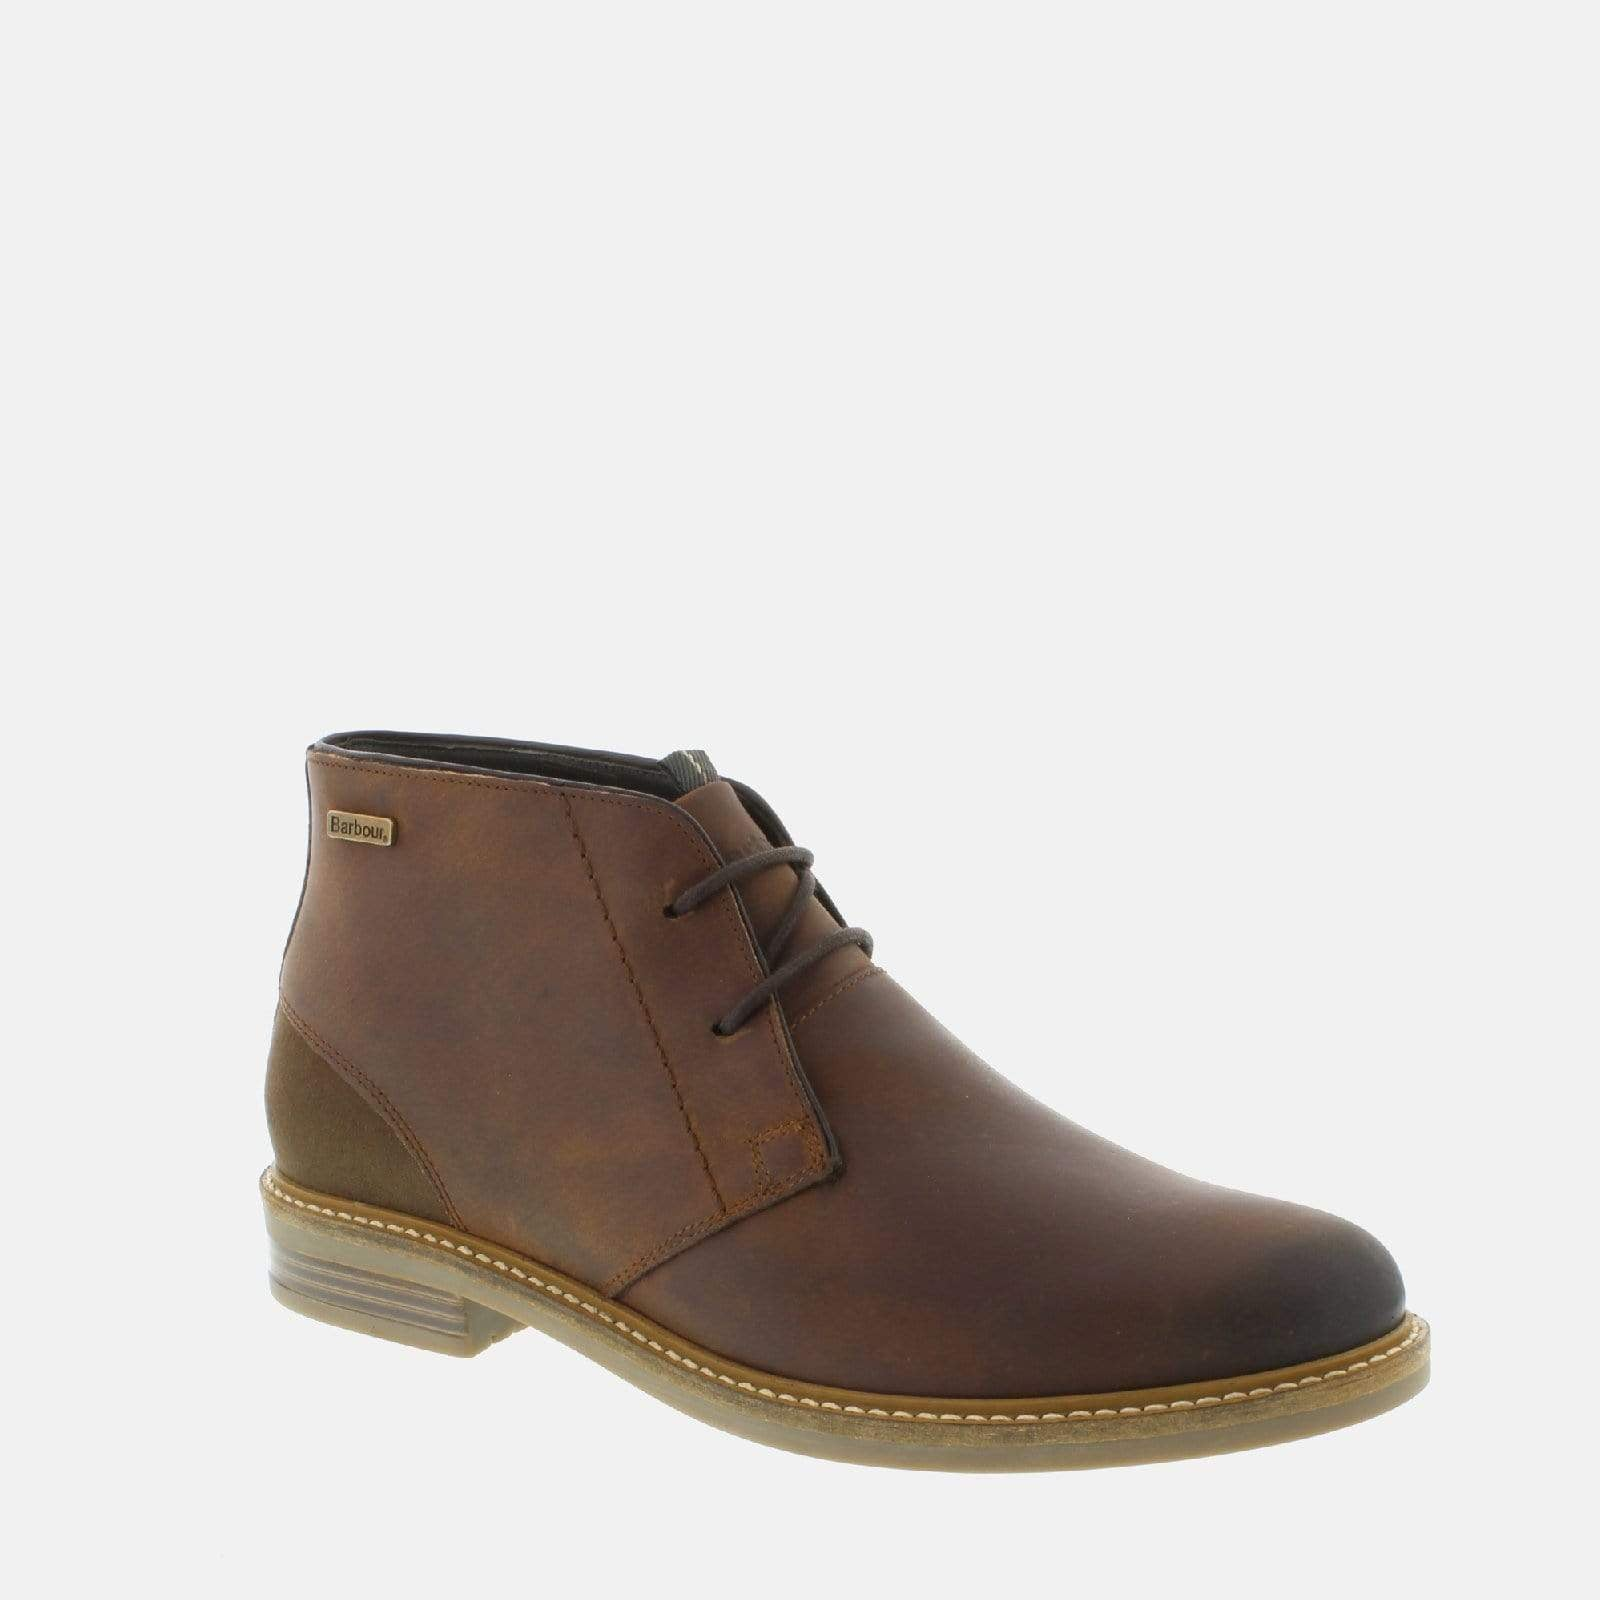 Barbour Footwear Readhead Tan